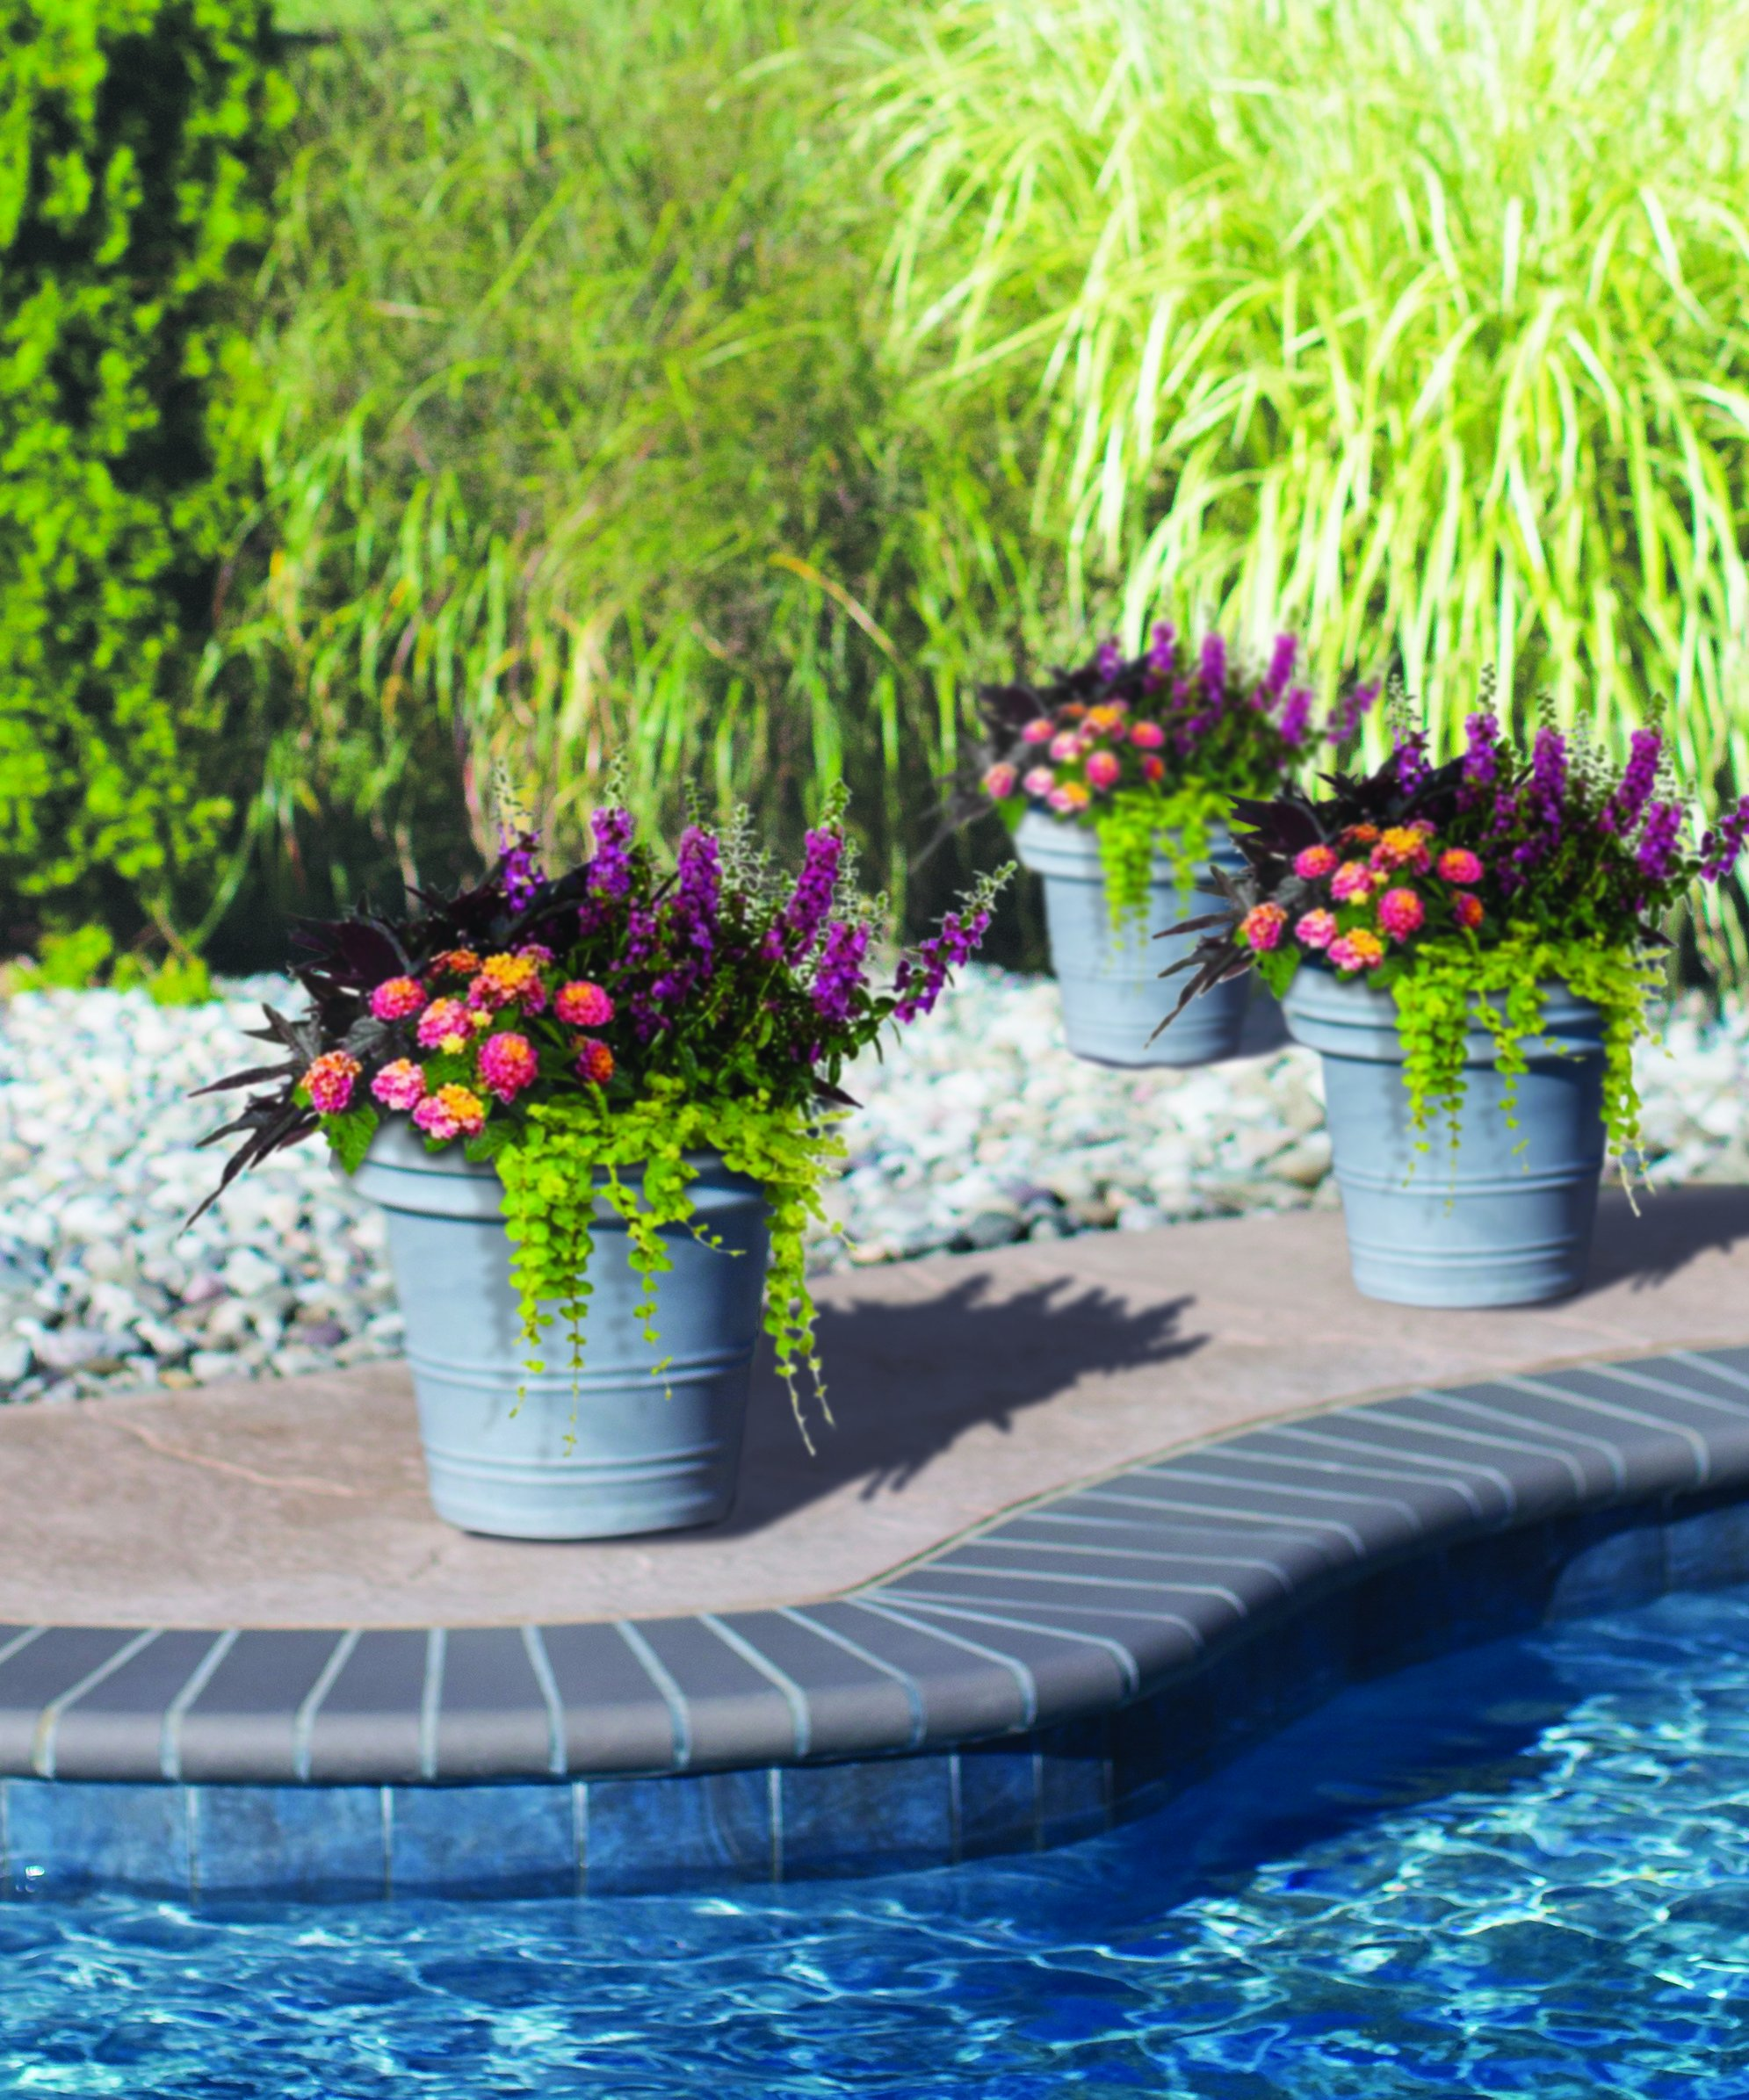 Burpee Combo 'Paradise' - Create Instant Colorful Container Gardens with Eight 4 in. pots by Burpee (Image #4)